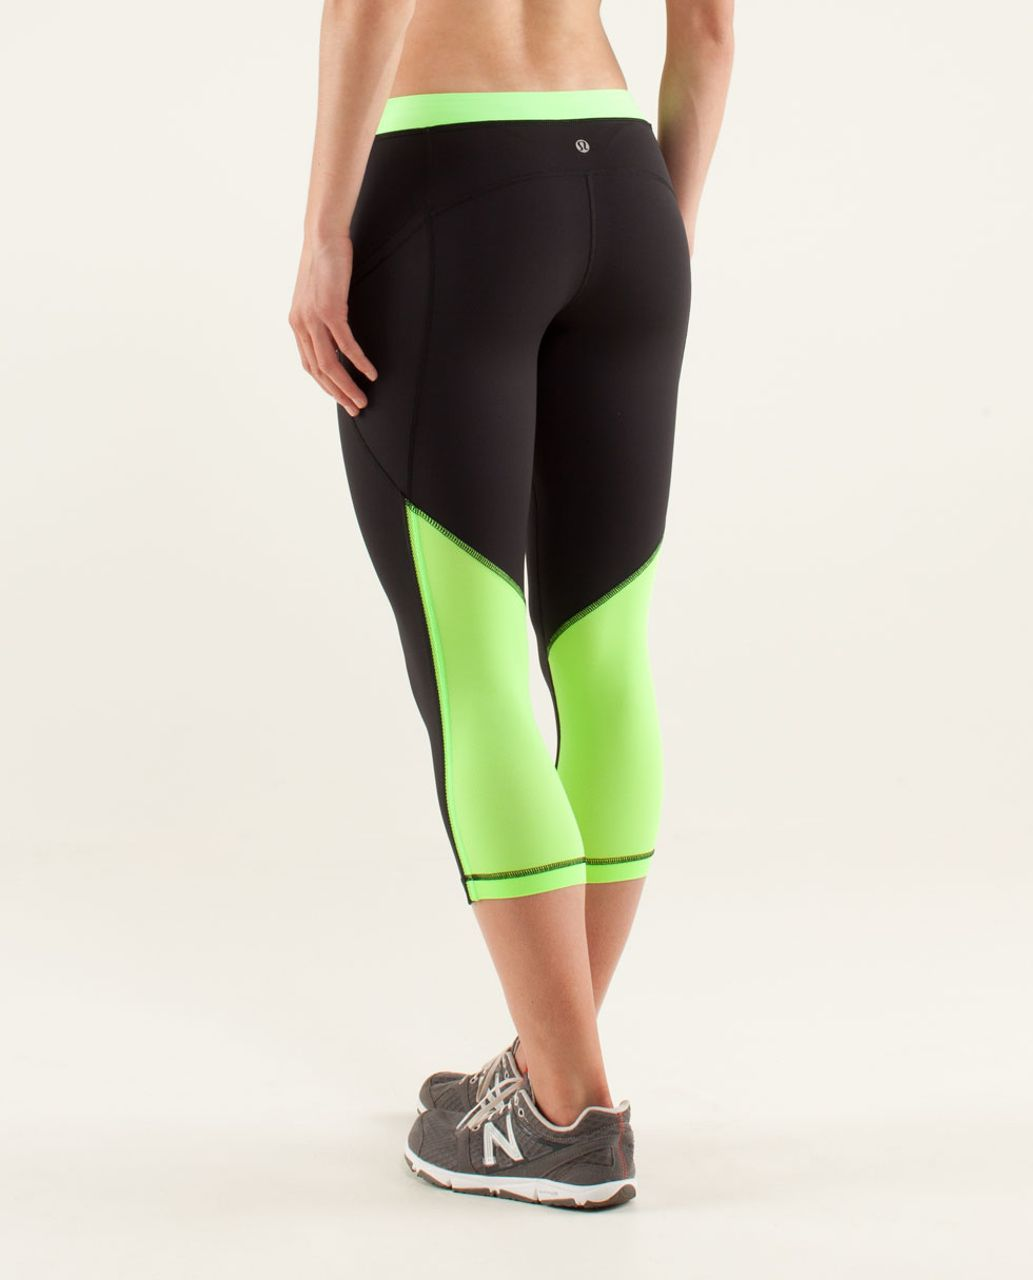 Lululemon Beach Runner Crop - Black / Zippy Green